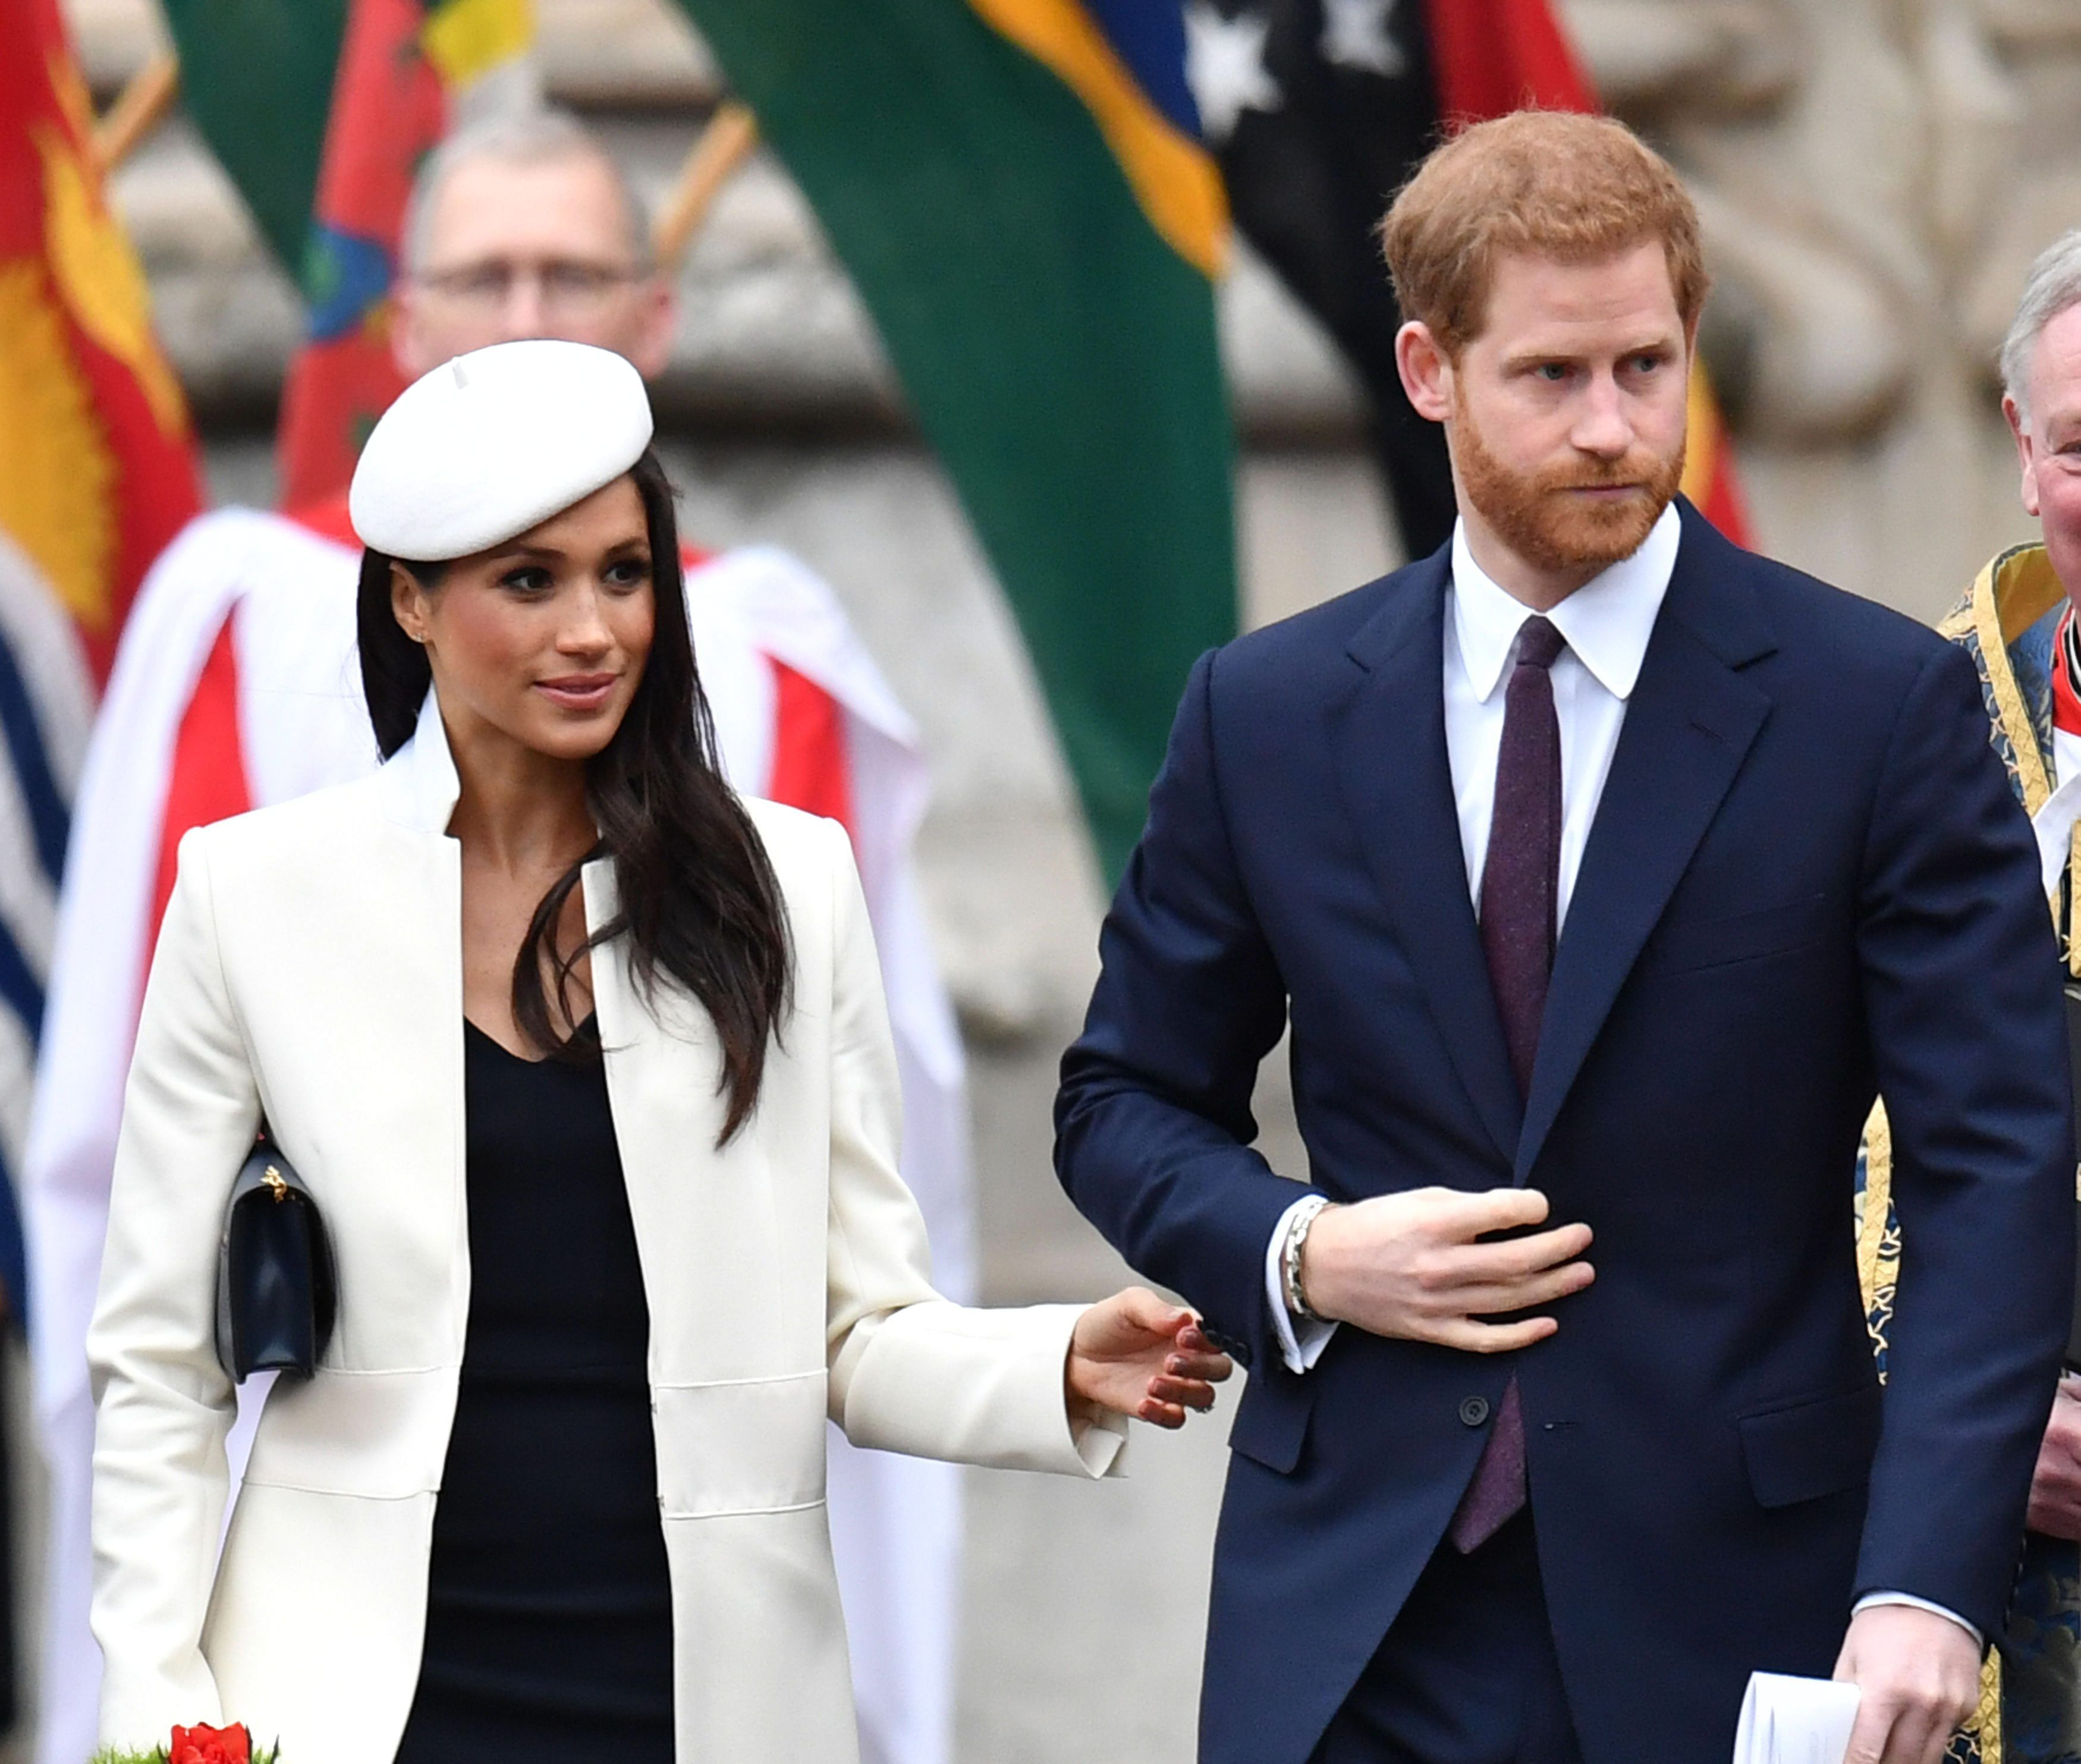 12 Shocking Rules For Marrying Into The British Royal Family - Fame10